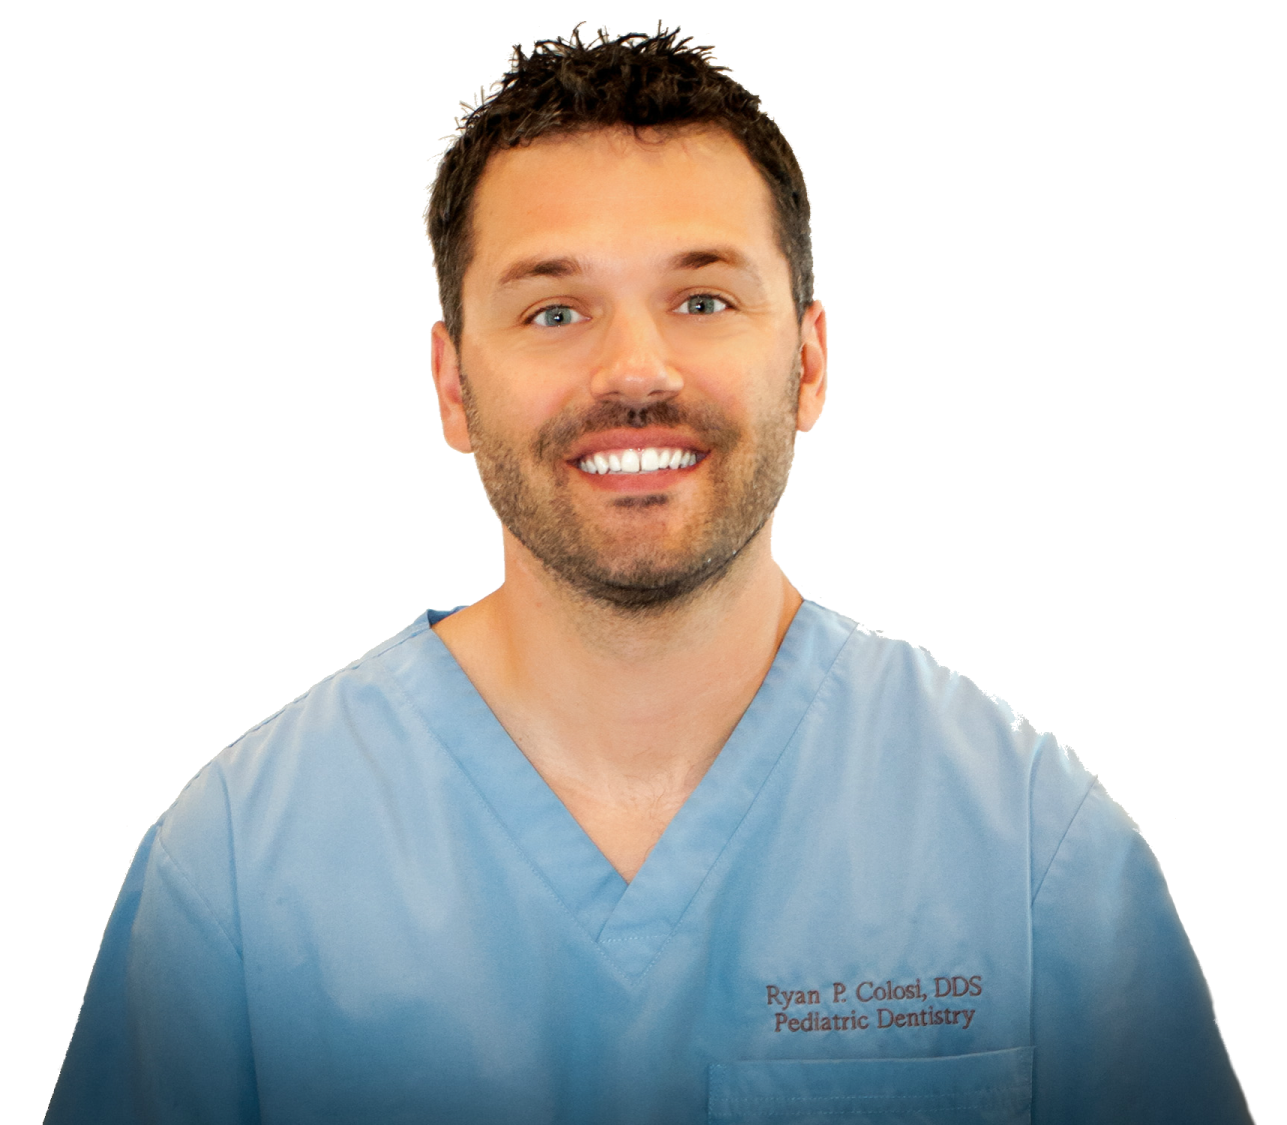 Dr. Ryan P. Colosi, DDS